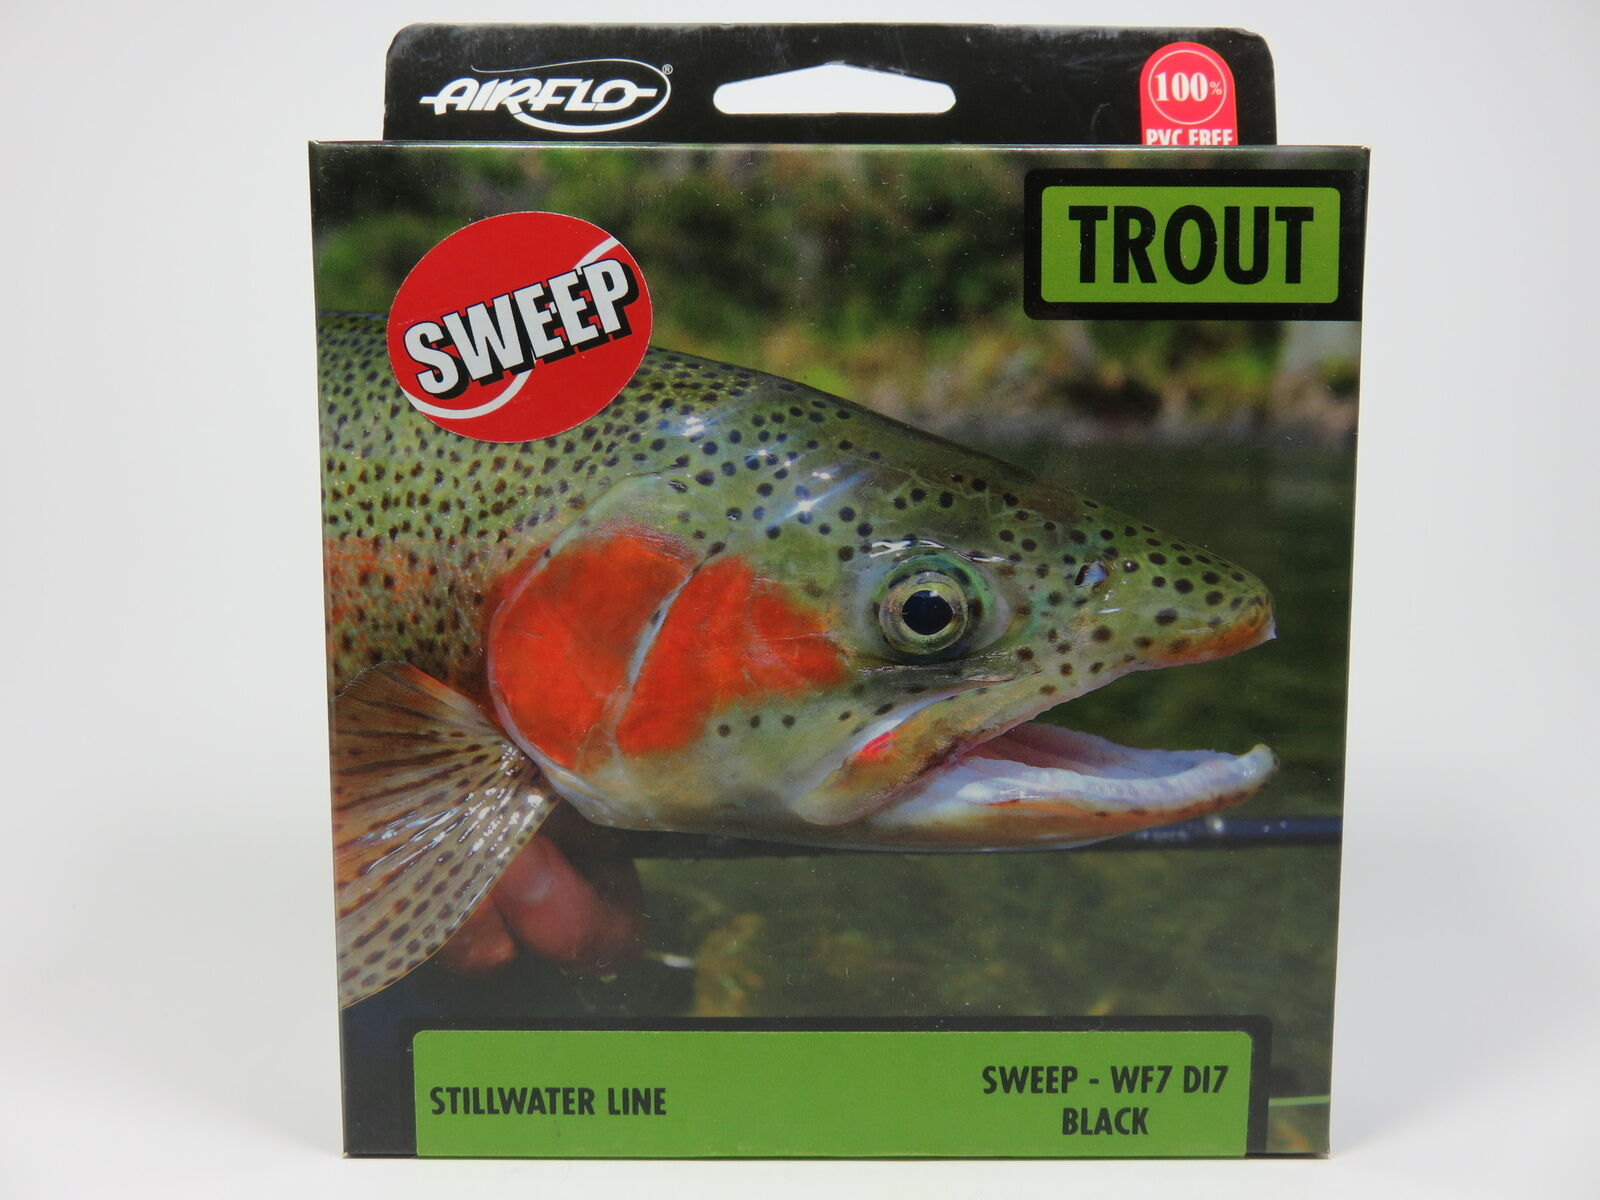 Airflo Sixth Sense Trout Sweep Fly Line: WF7 DI7